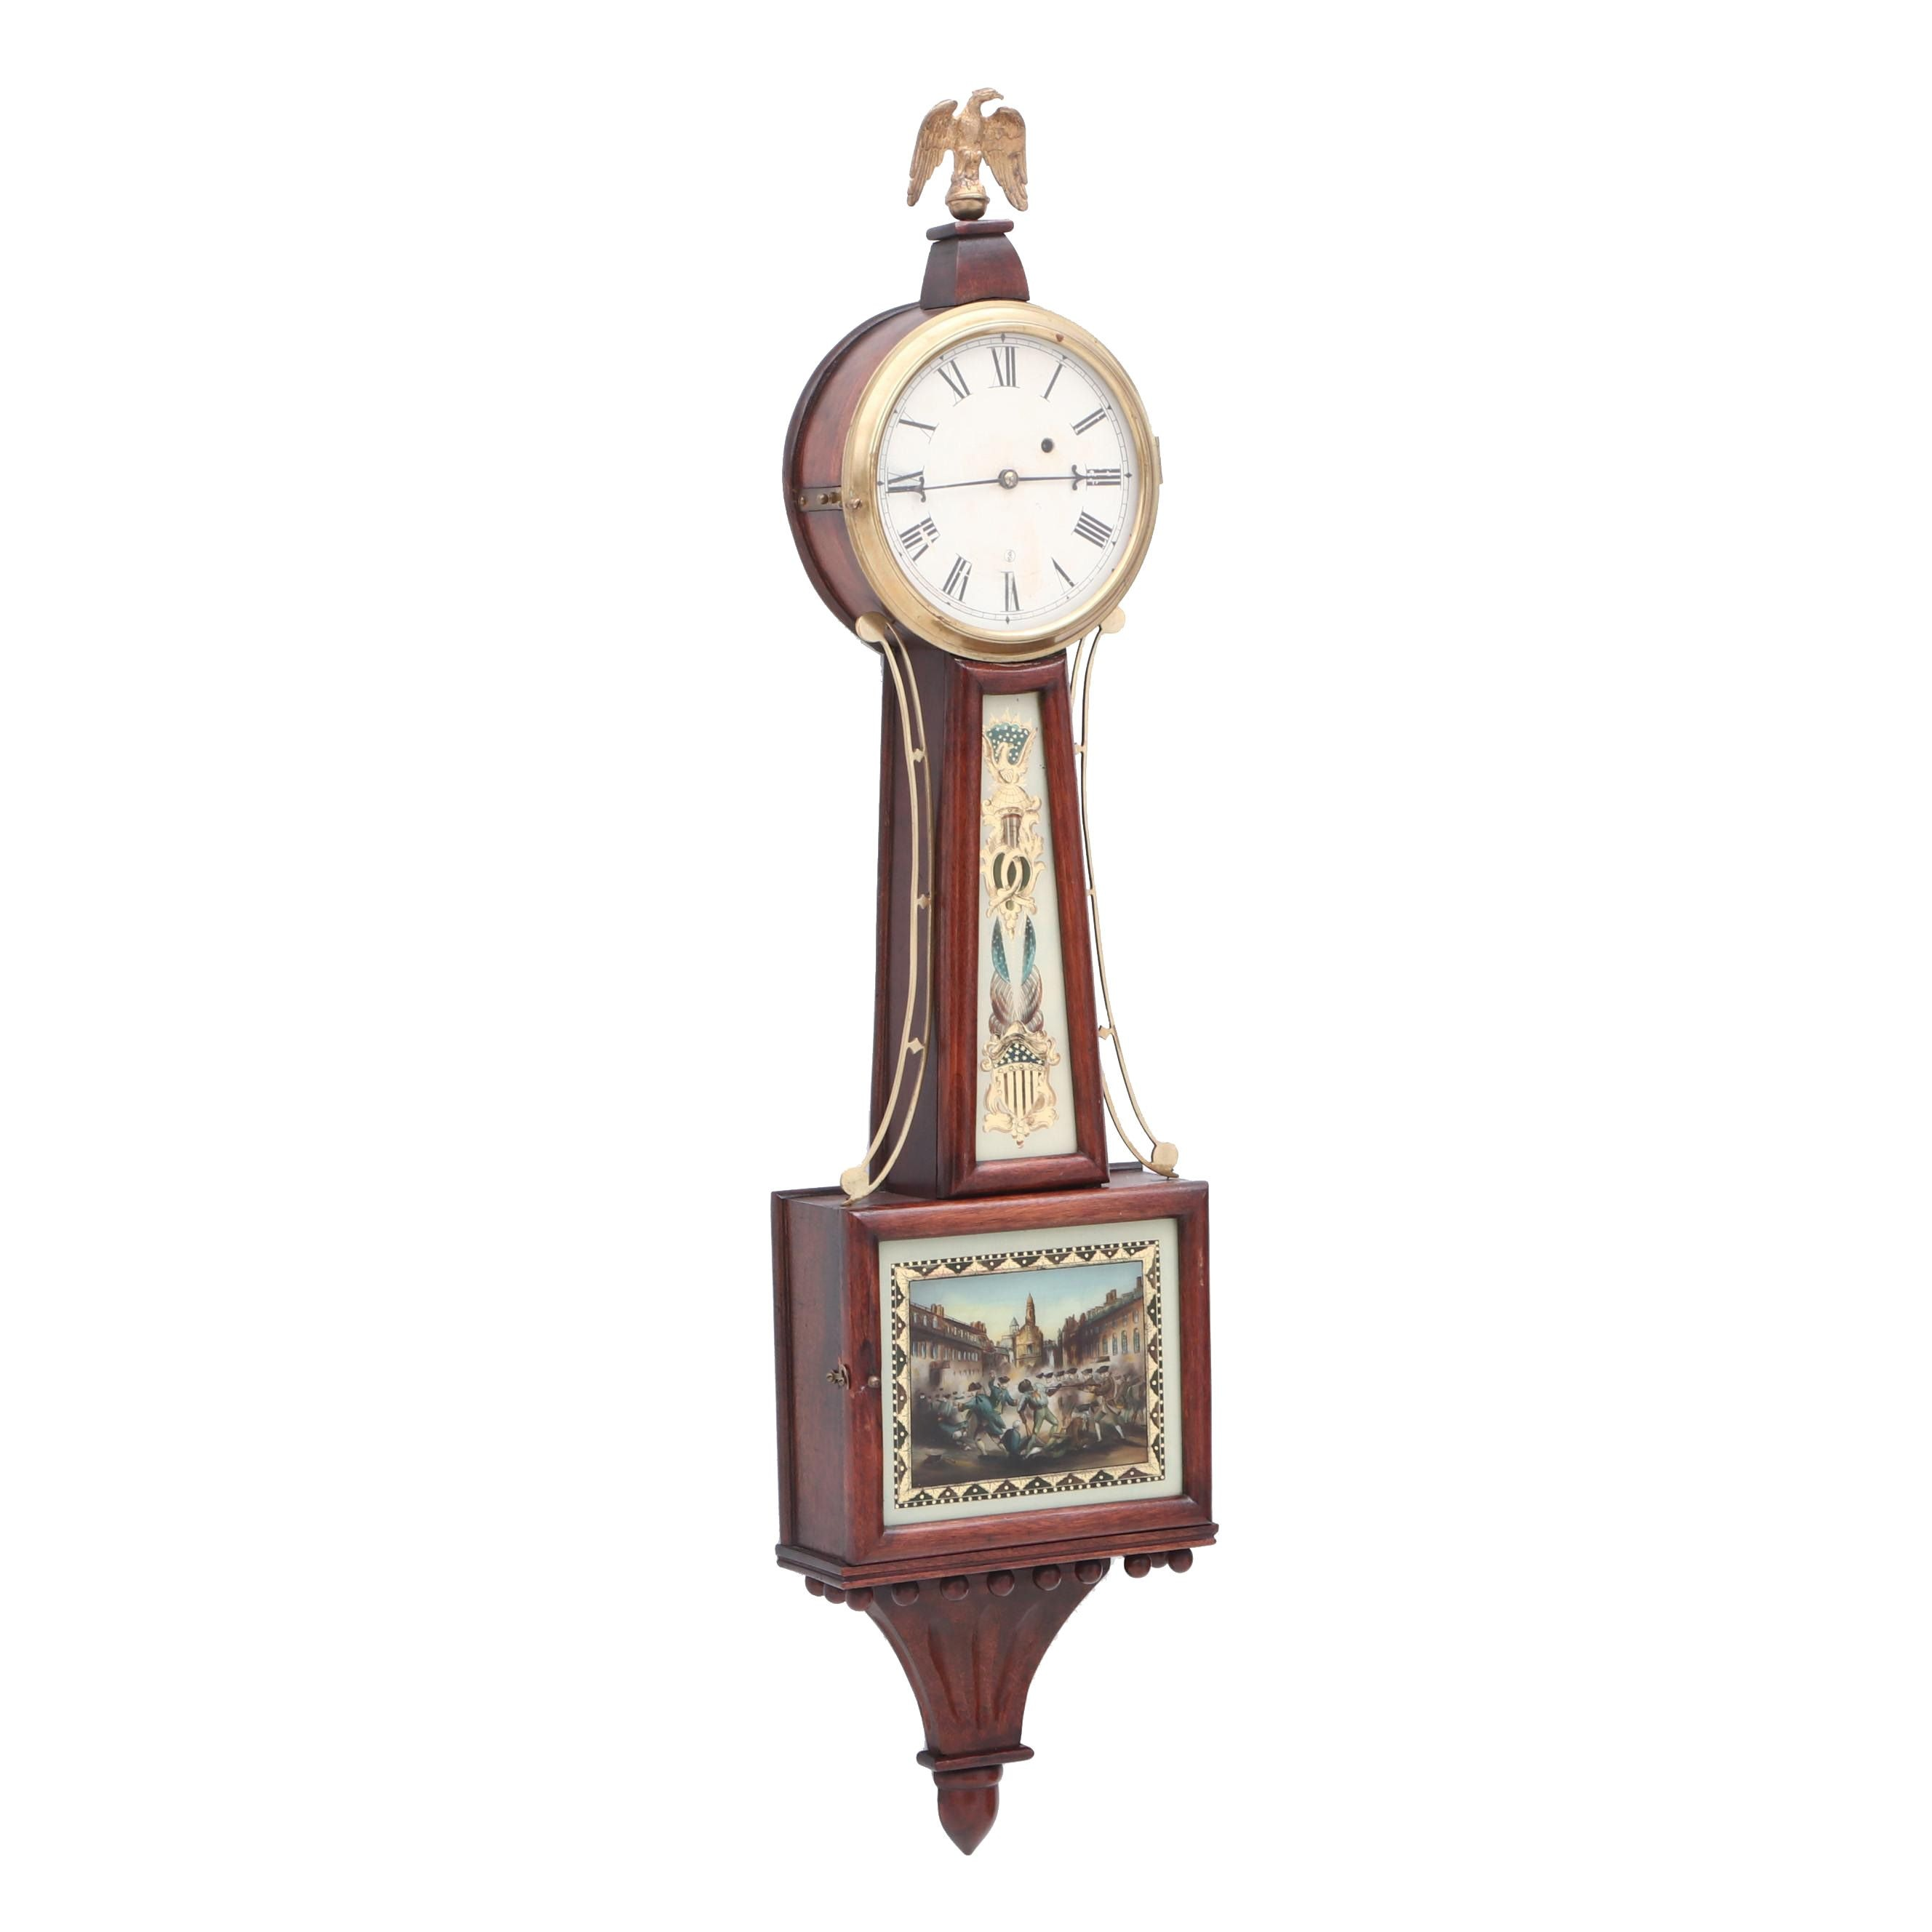 Copy Banjo Clock with Reverse Painted Revolutionary War Scenes and Eagle Crest